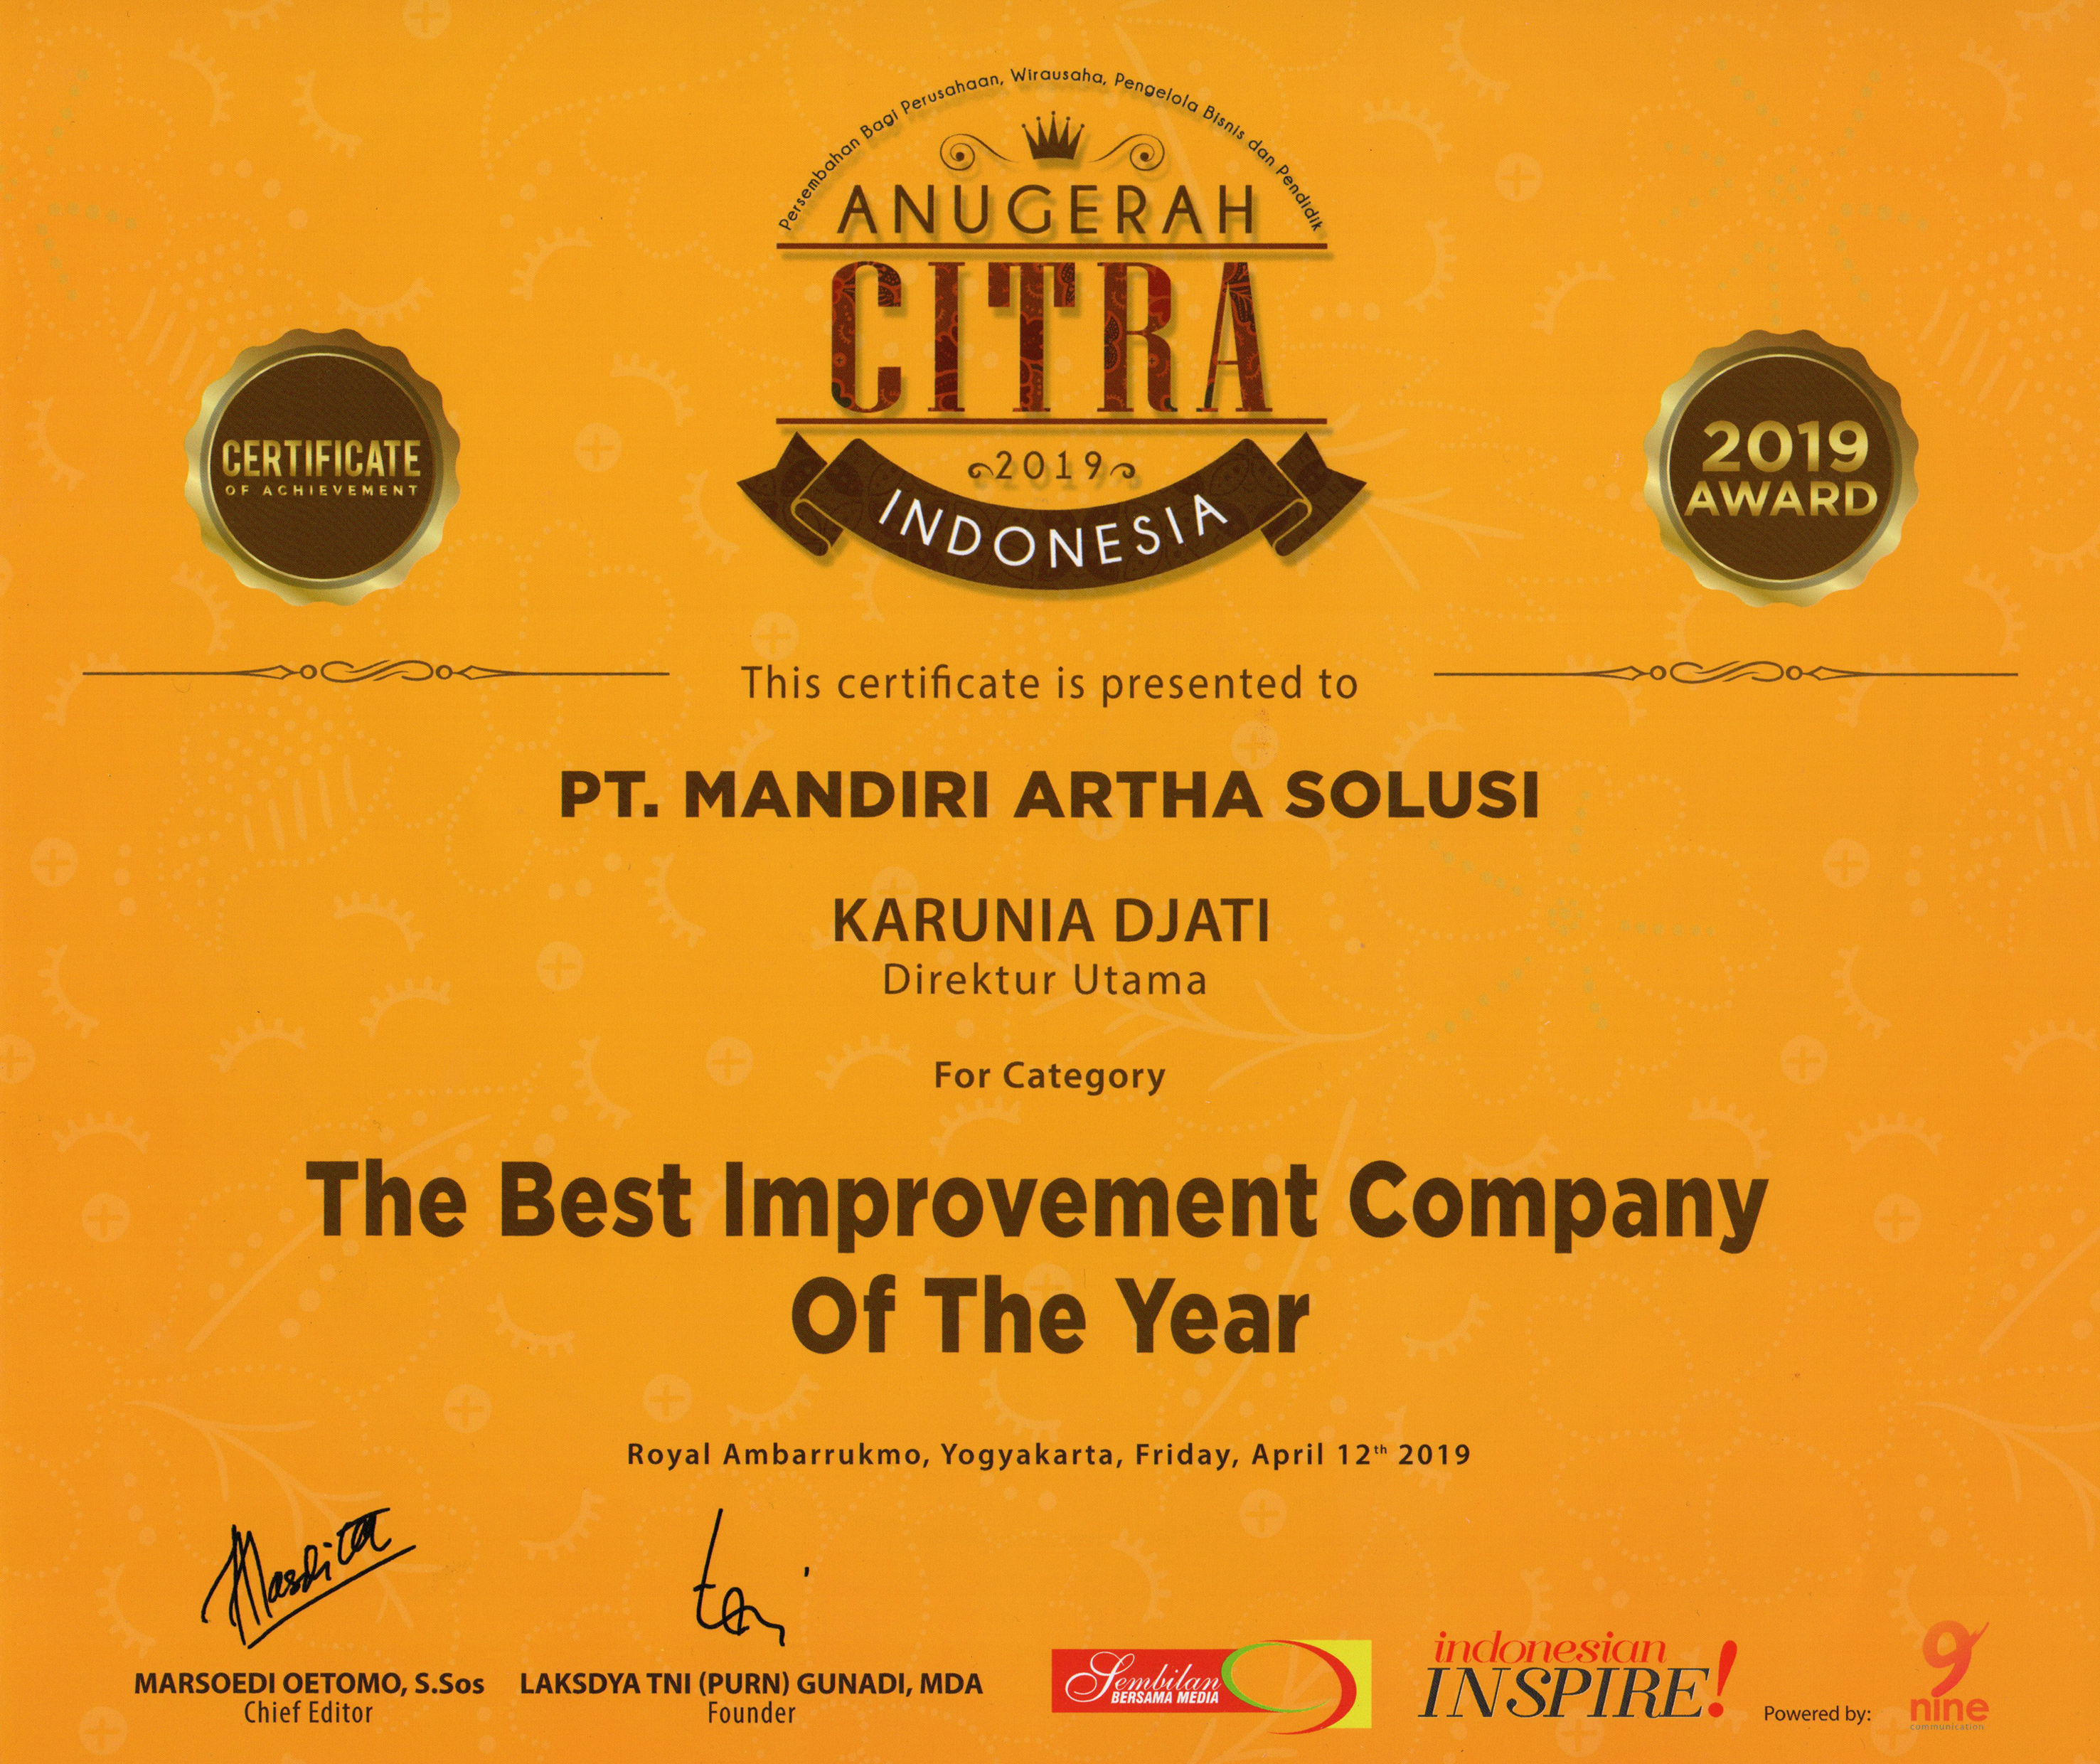 The Best Improvement Company Of The Year